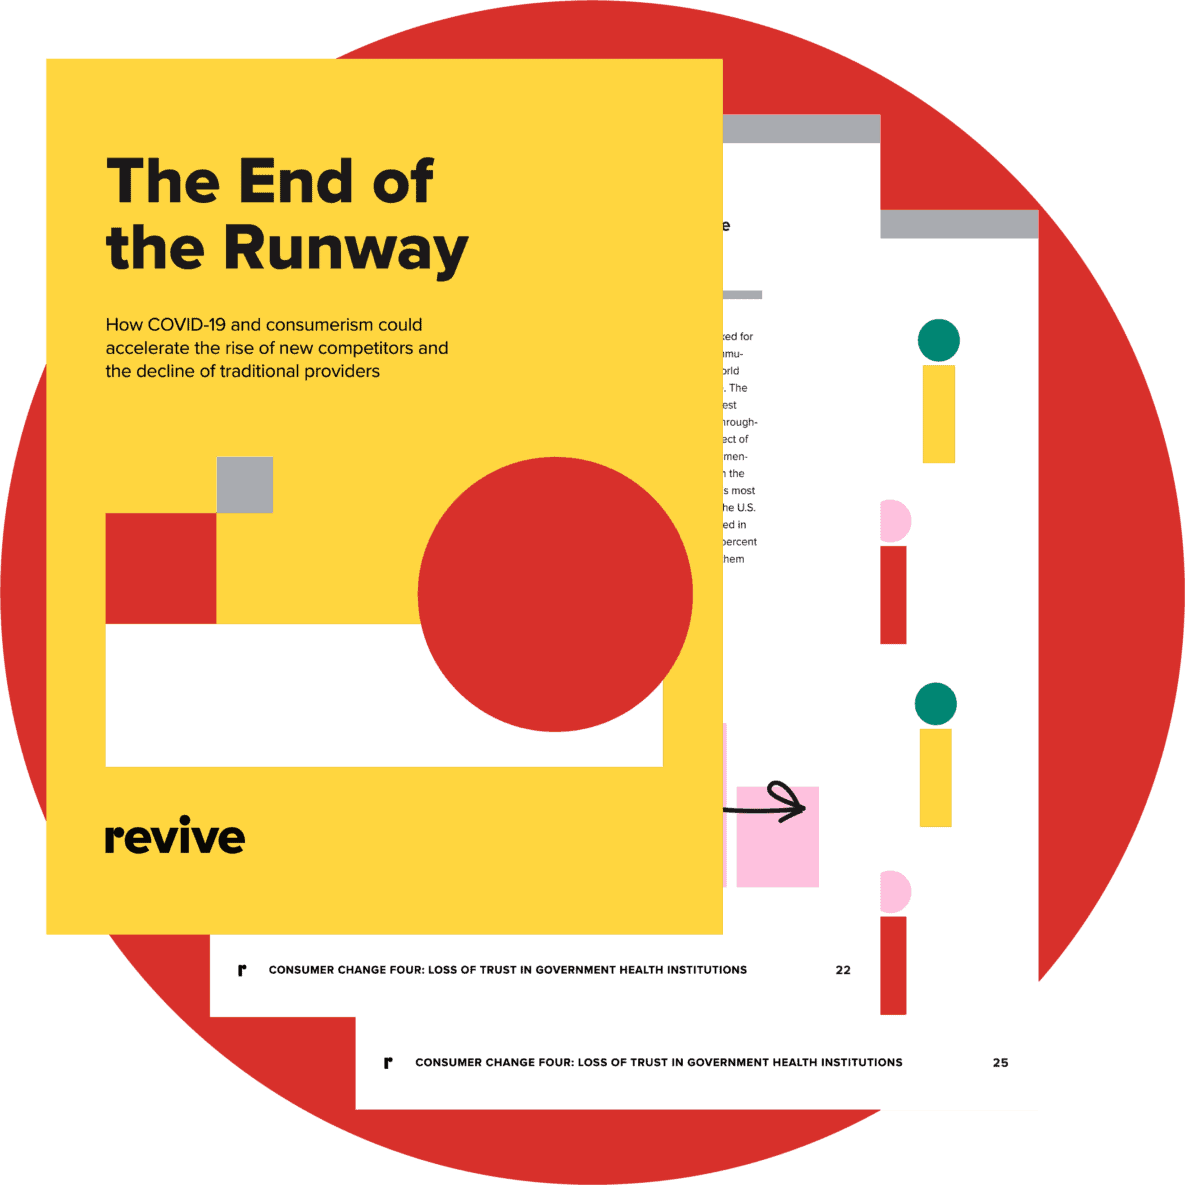 End of the runway: consumerism, COVID-19, and the coming decade